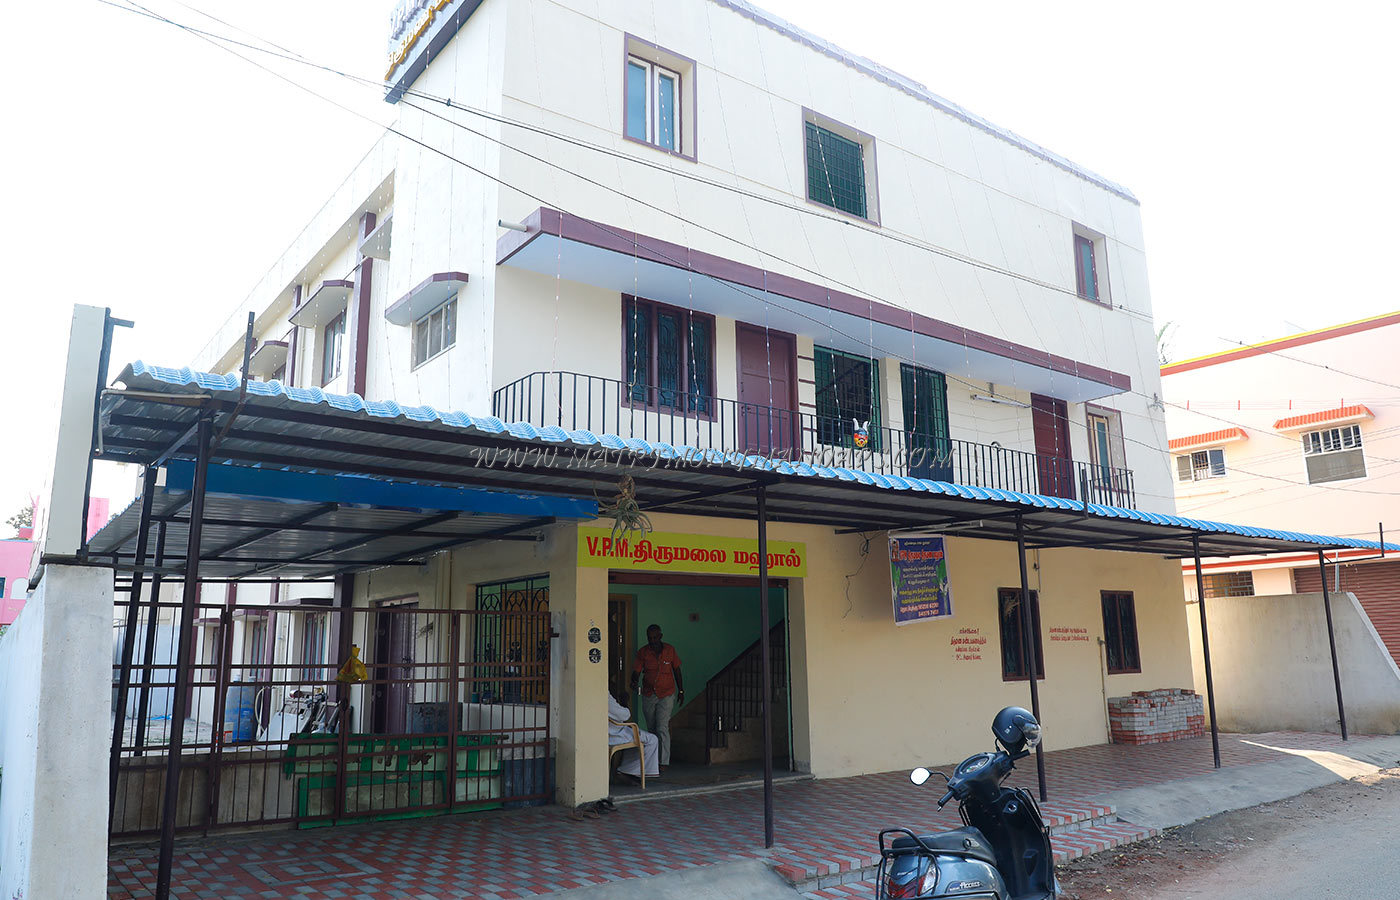 Find the availability of the VPM Thirumalai Mahal in K Pudur, Madurai and avail special offers